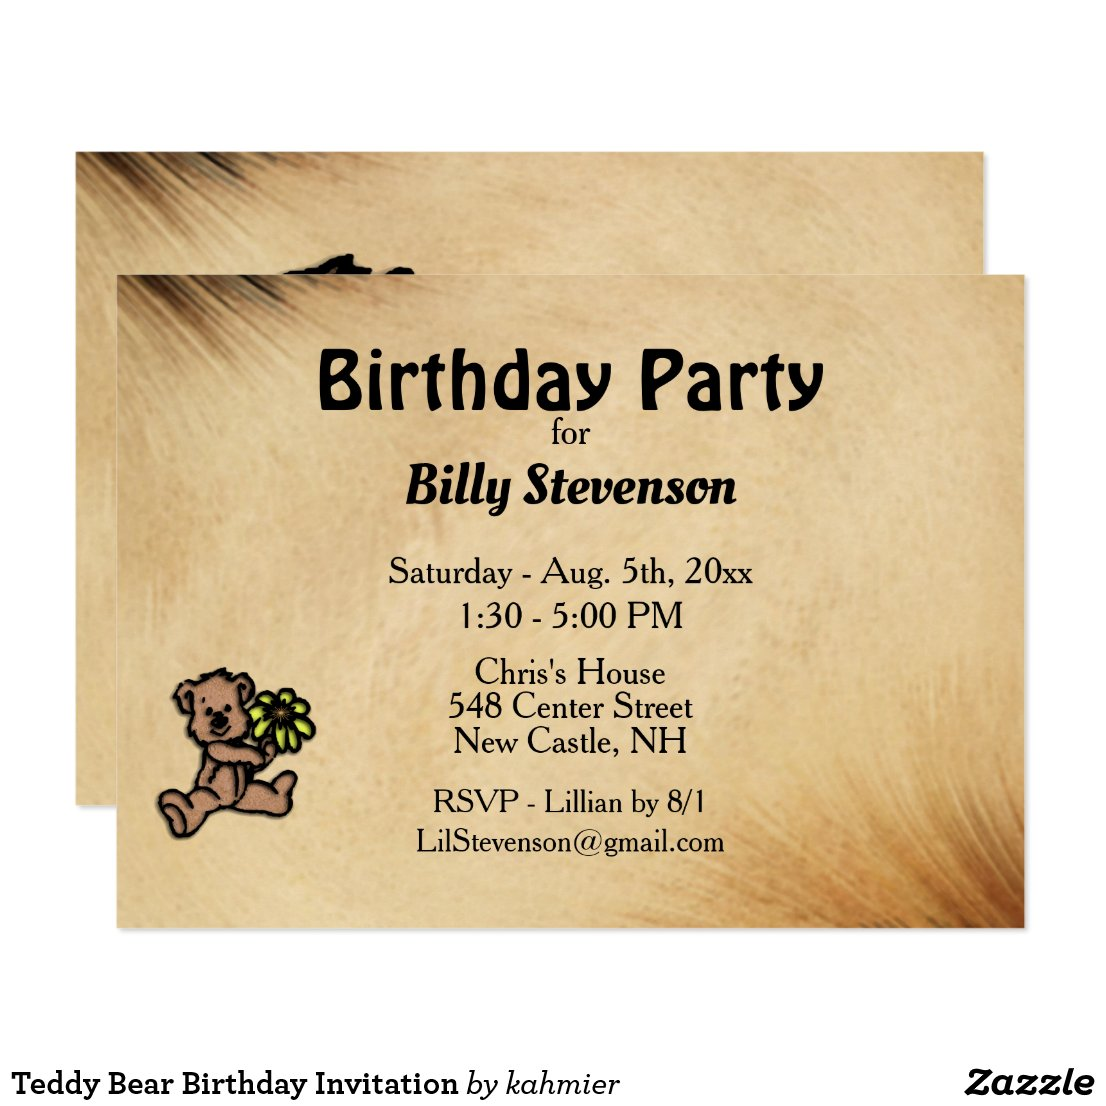 Teddy Bear Birthday Invitation